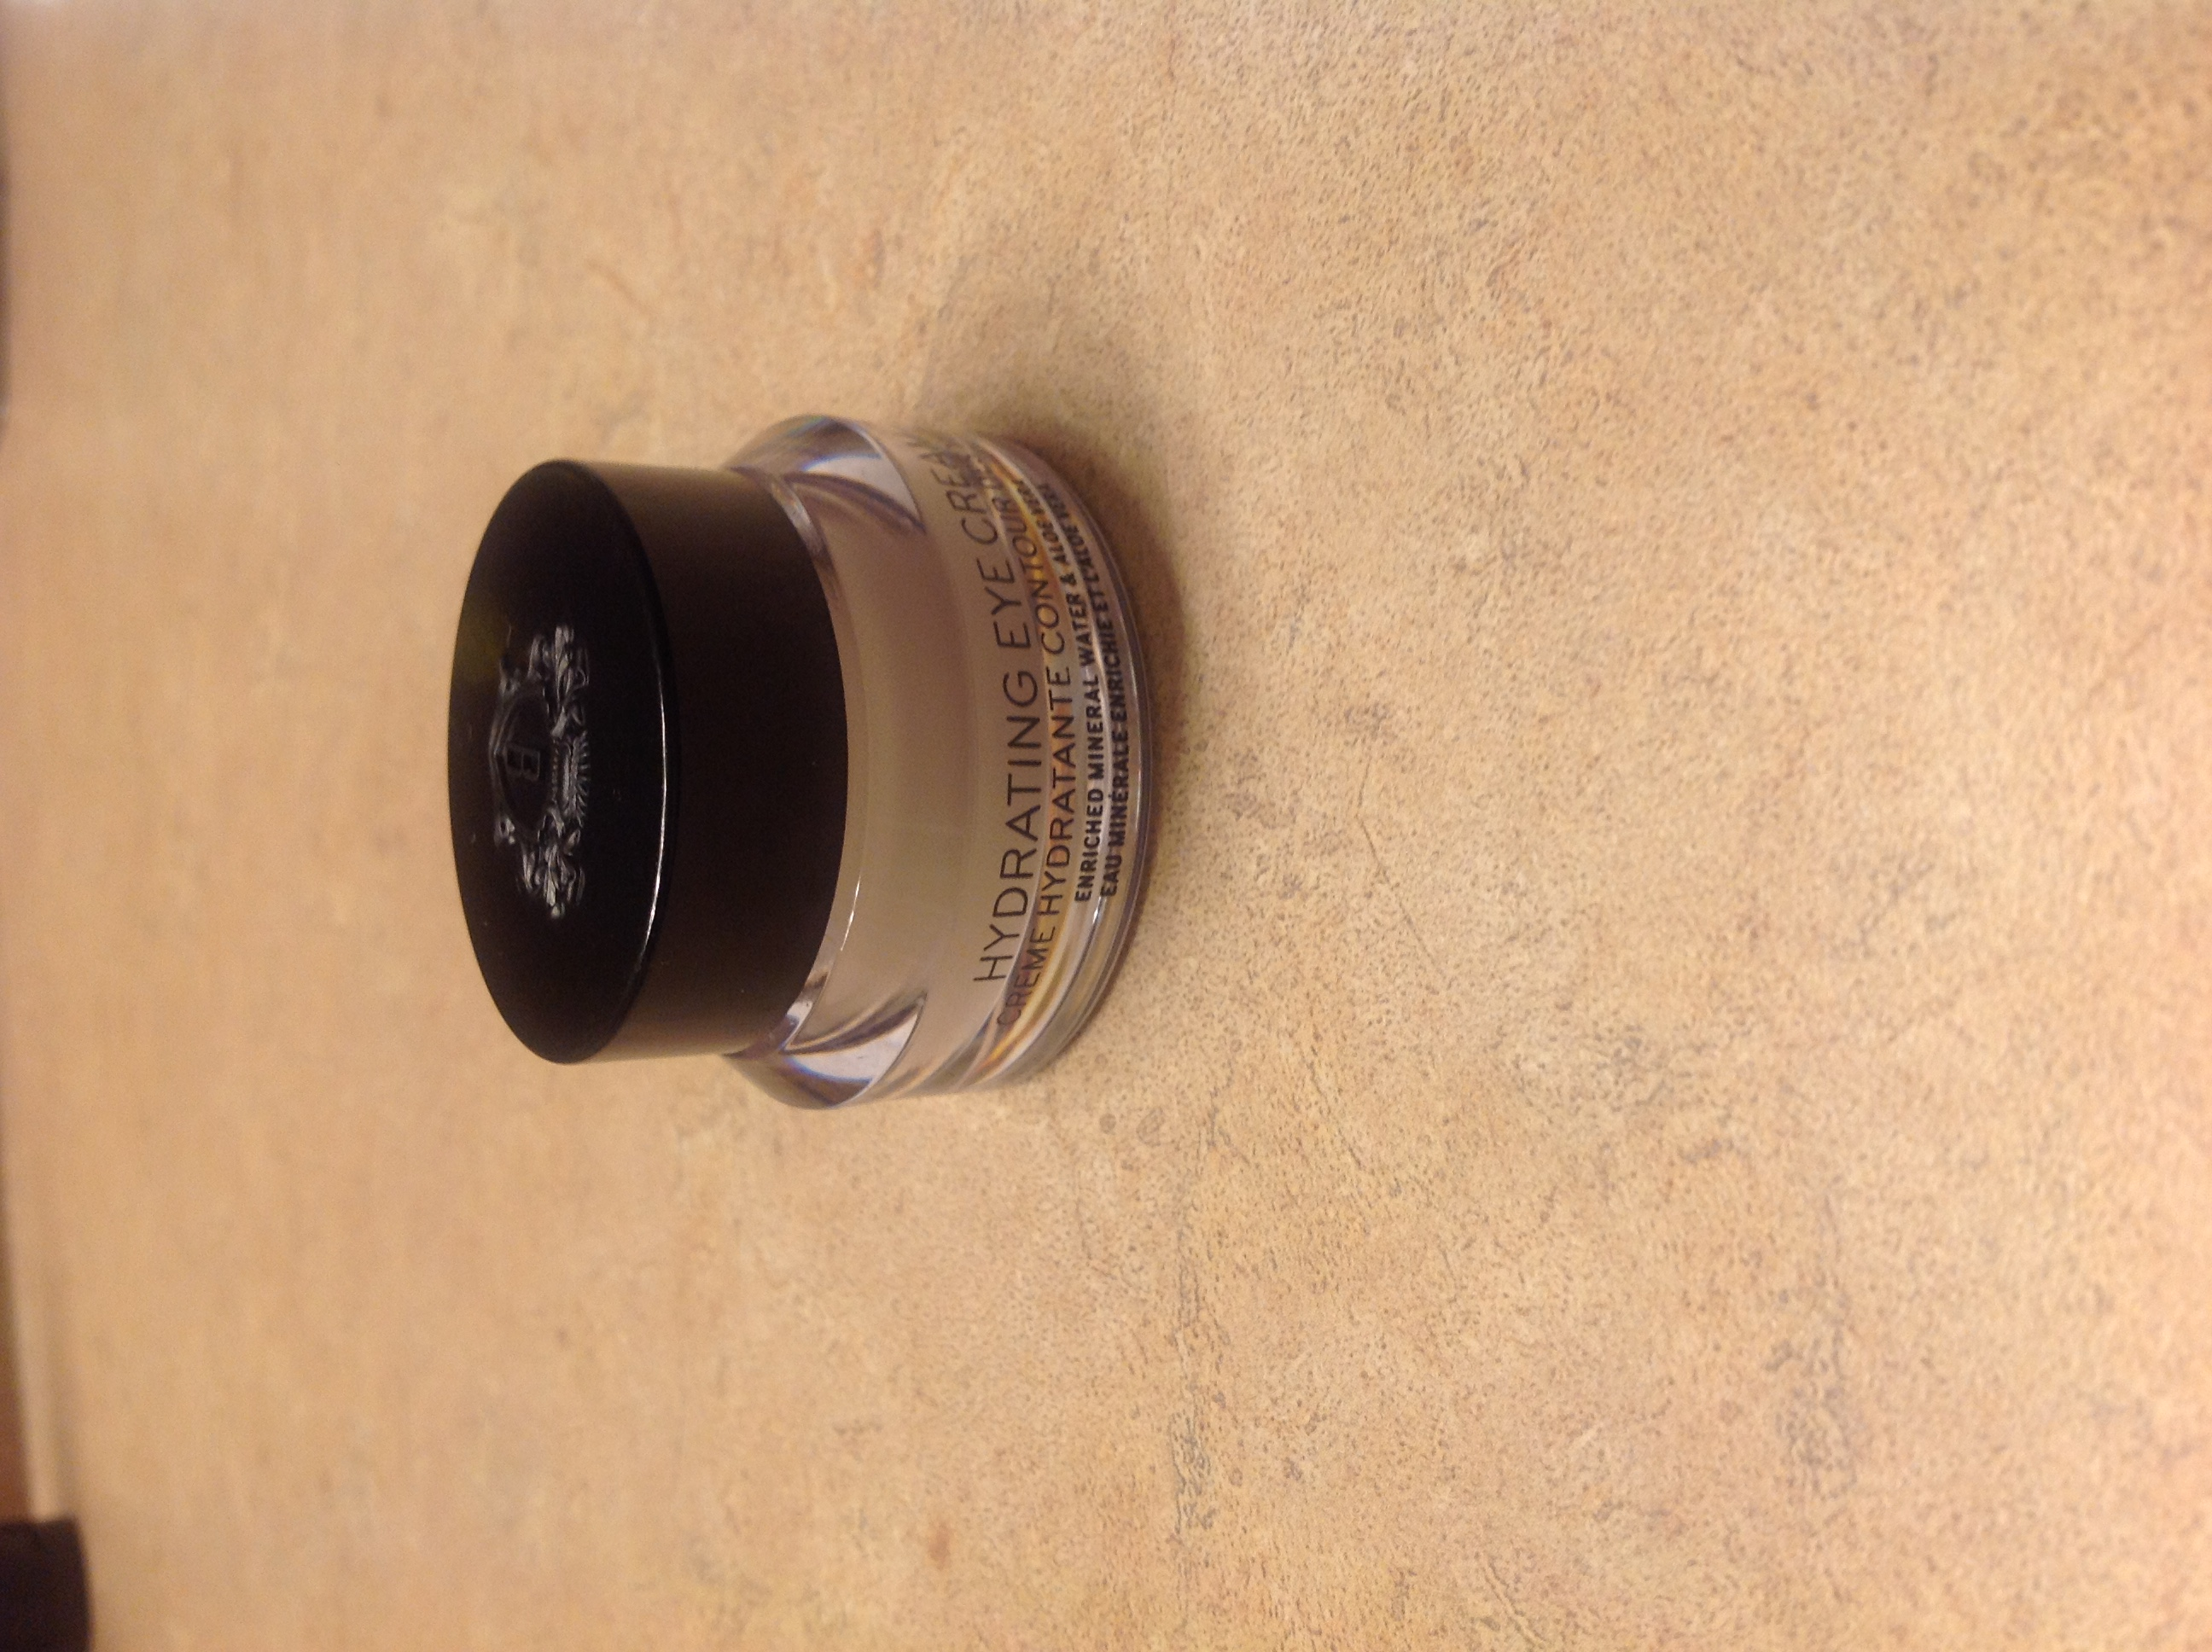 BOBBI BROWN Hydrating Eye Cream uploaded by Aysha K.